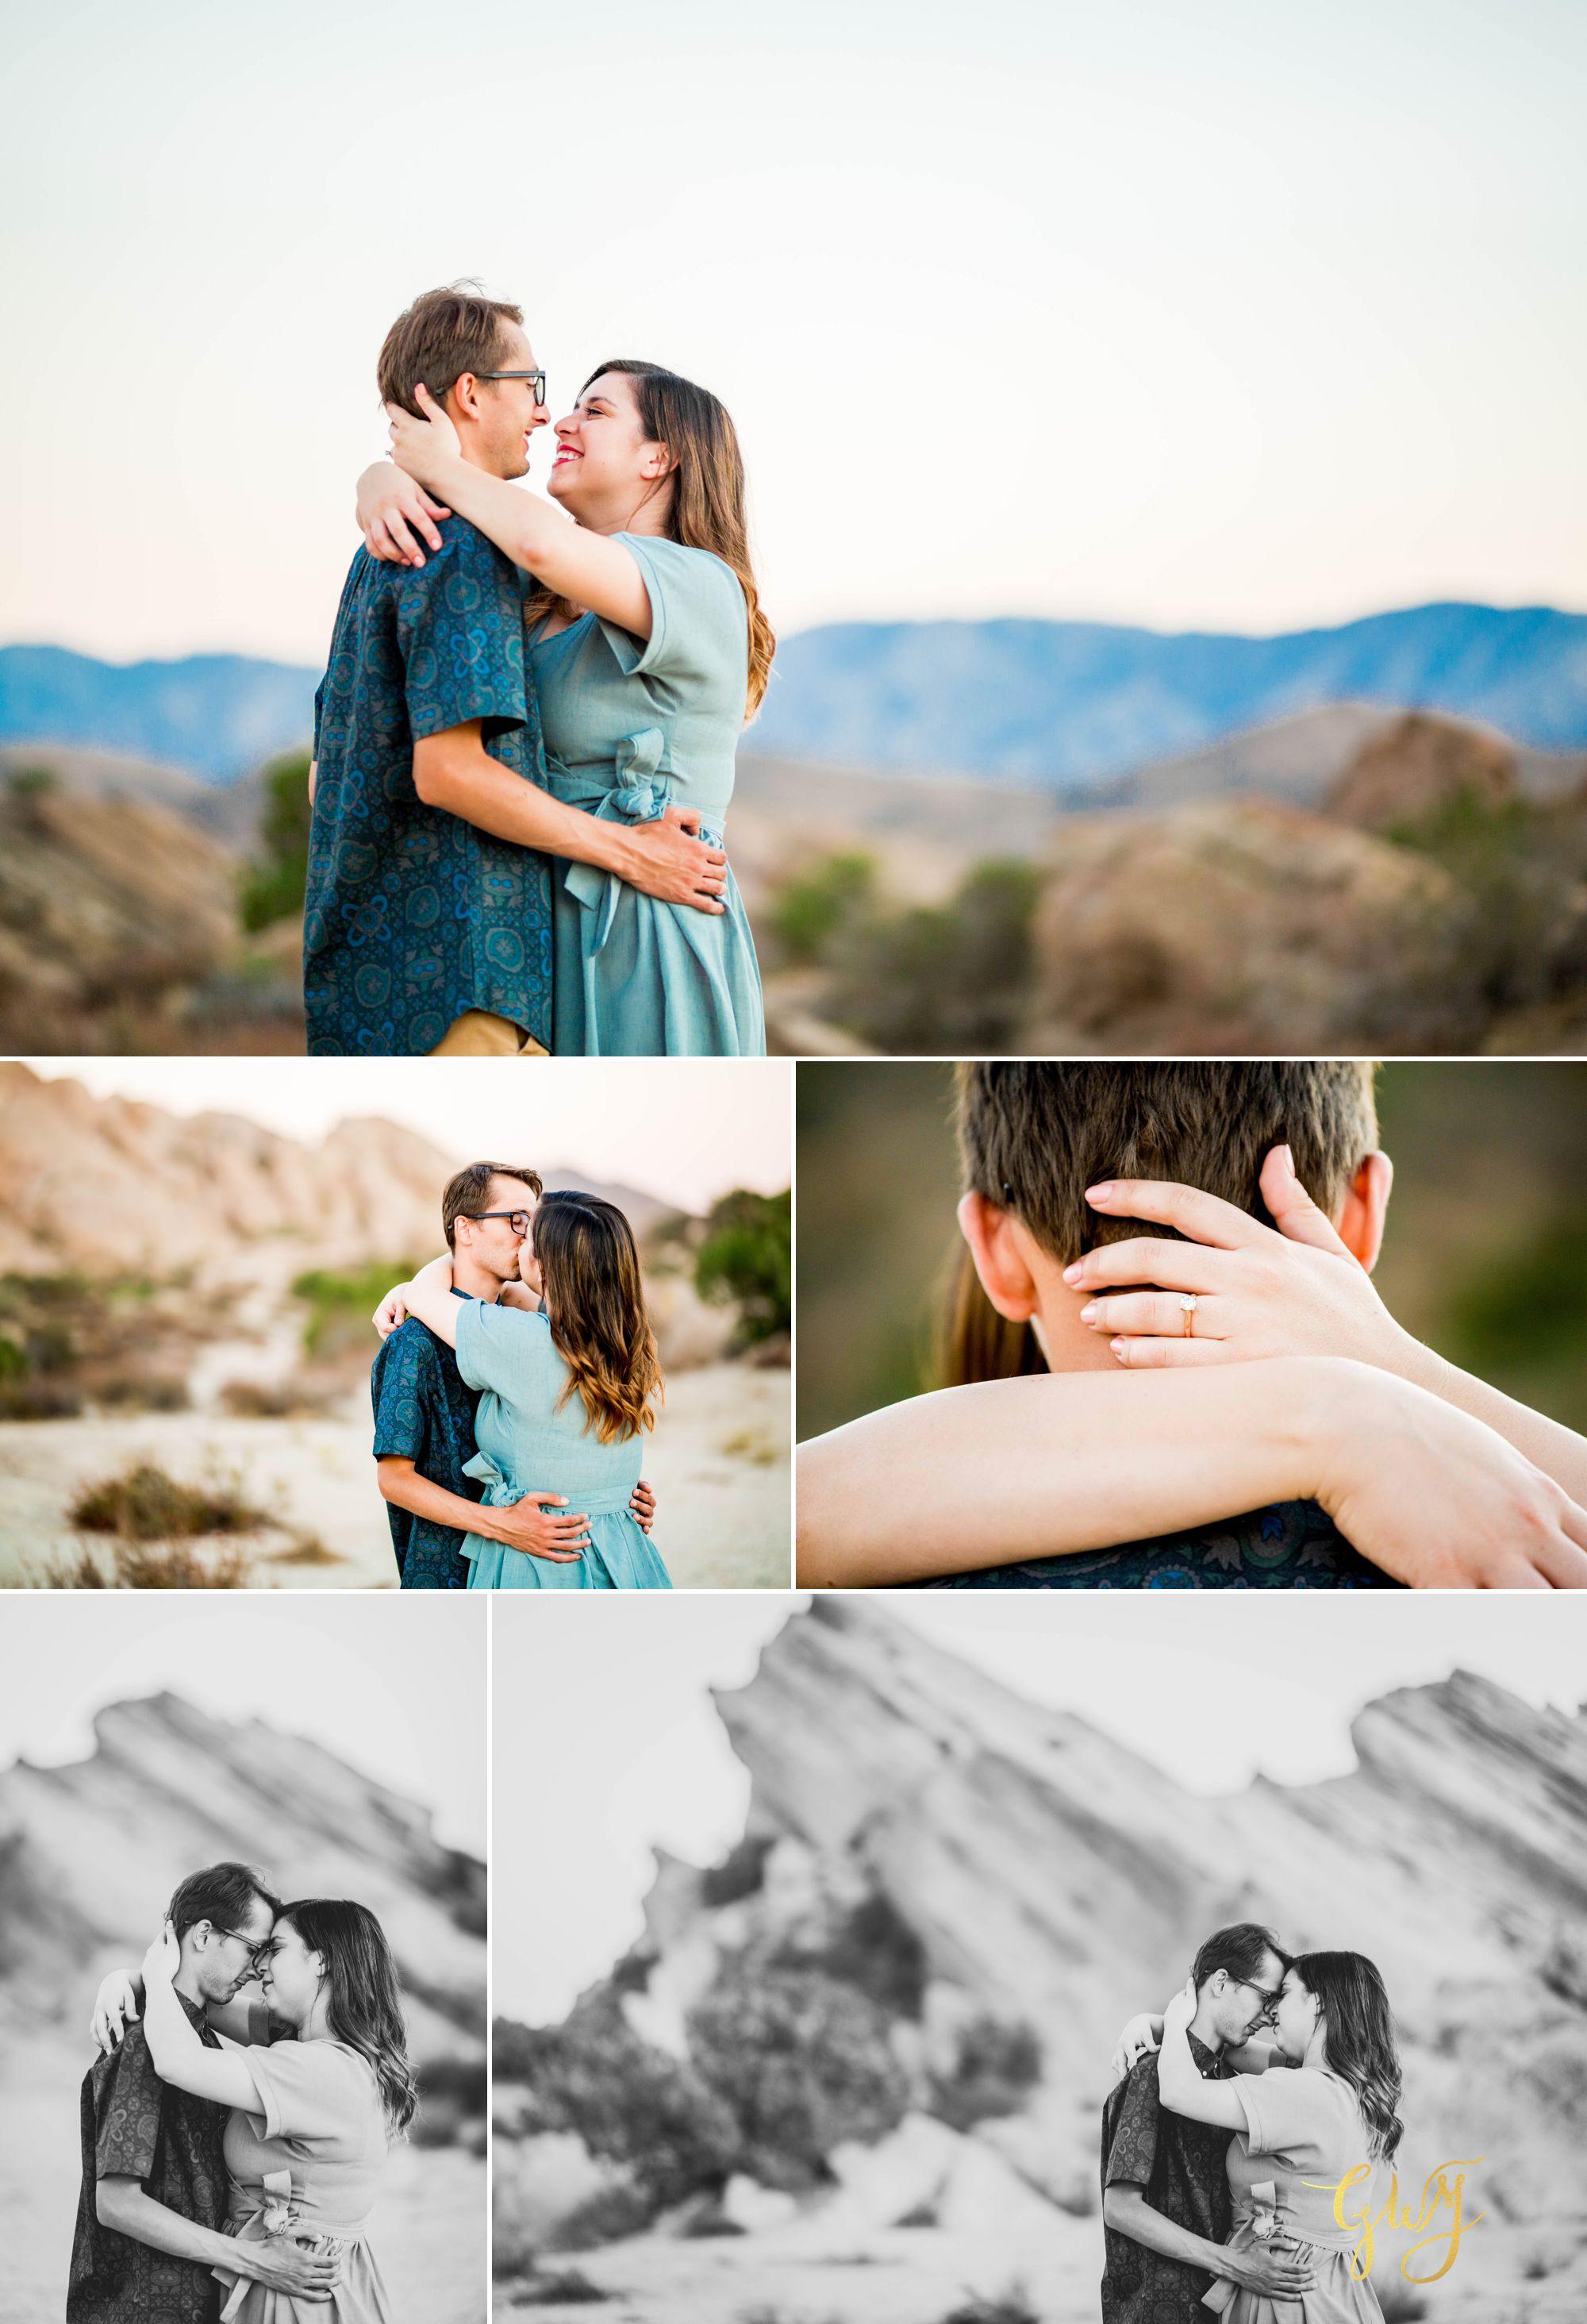 KJ + Maddie Vasquez Rocks Adventurous Hiking Outdoors Engagement Session by Glass Woods Media 15.jpg